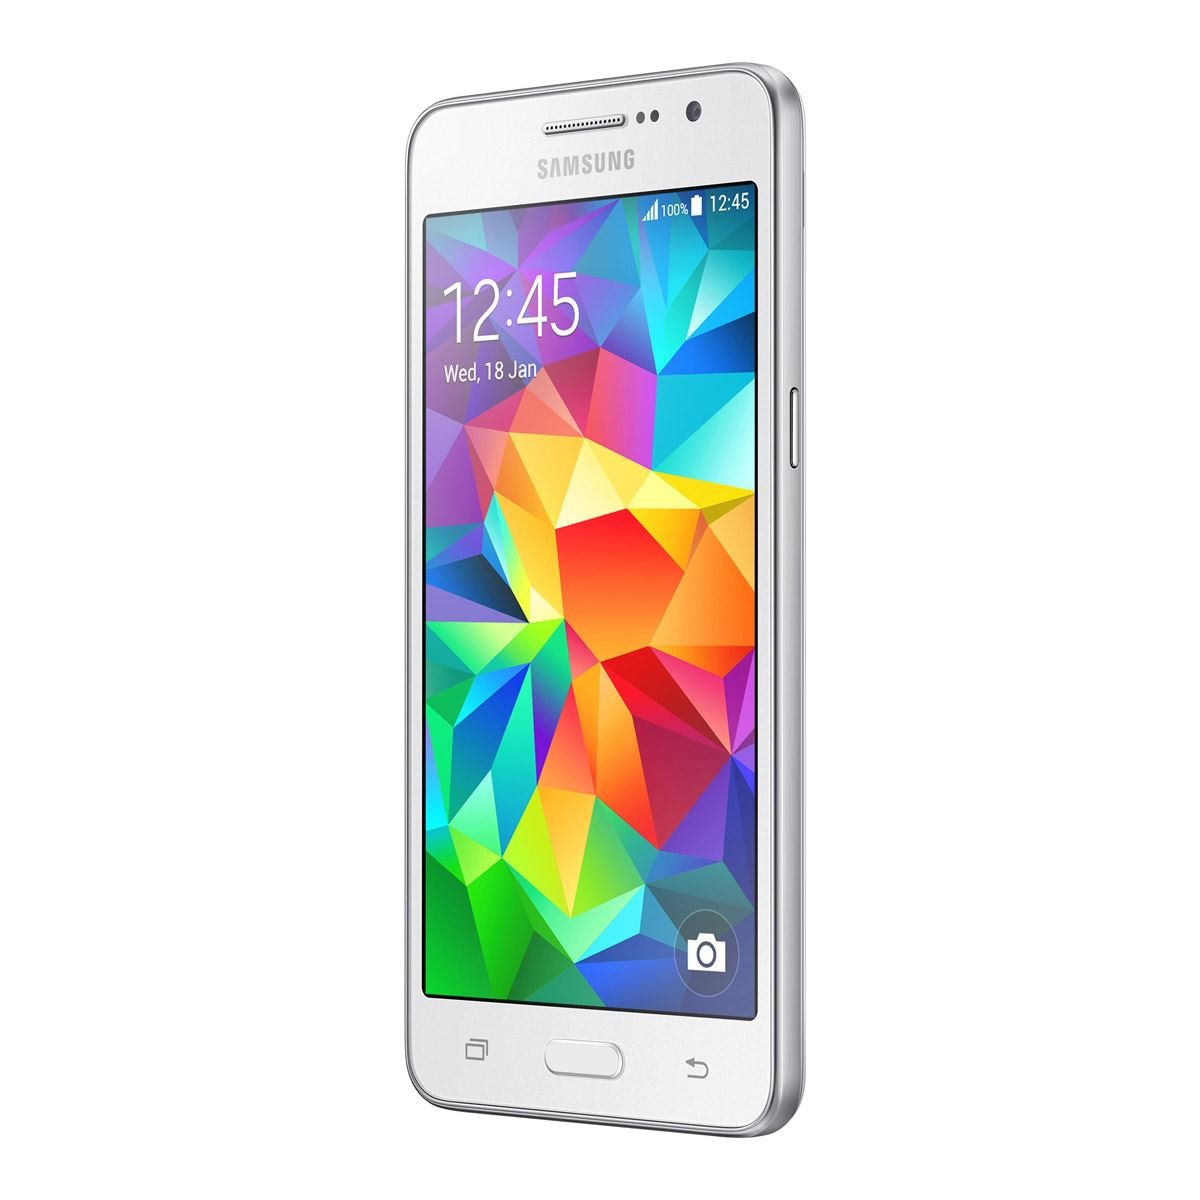 Samsung Galaxy Grand Prime DUOS G531H/DS 8GB Unlocked GSM Quad-Core Android Phone w/ 8MP Camera - White